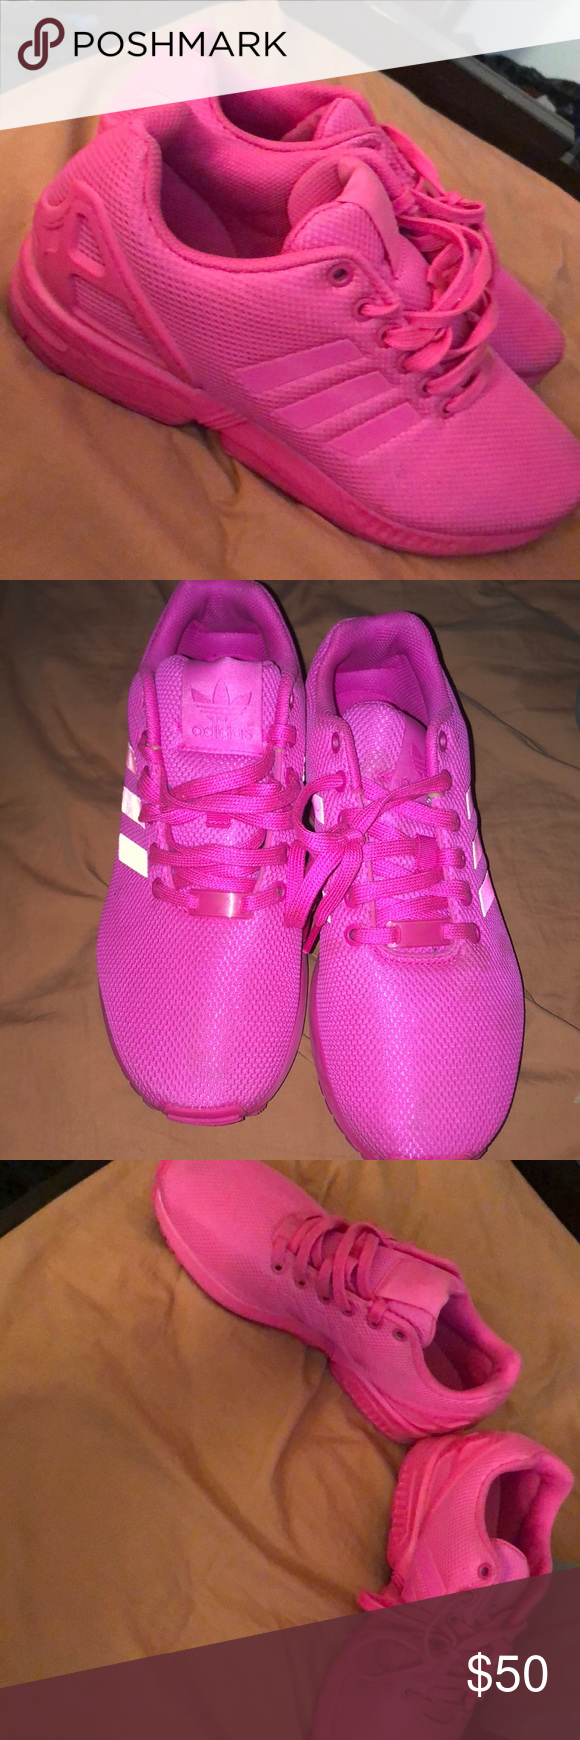 plus récent 77ba2 effcc Adidas ZX FLUX Neon Pink Adidas ZX Flux, ALL PINK but the ...